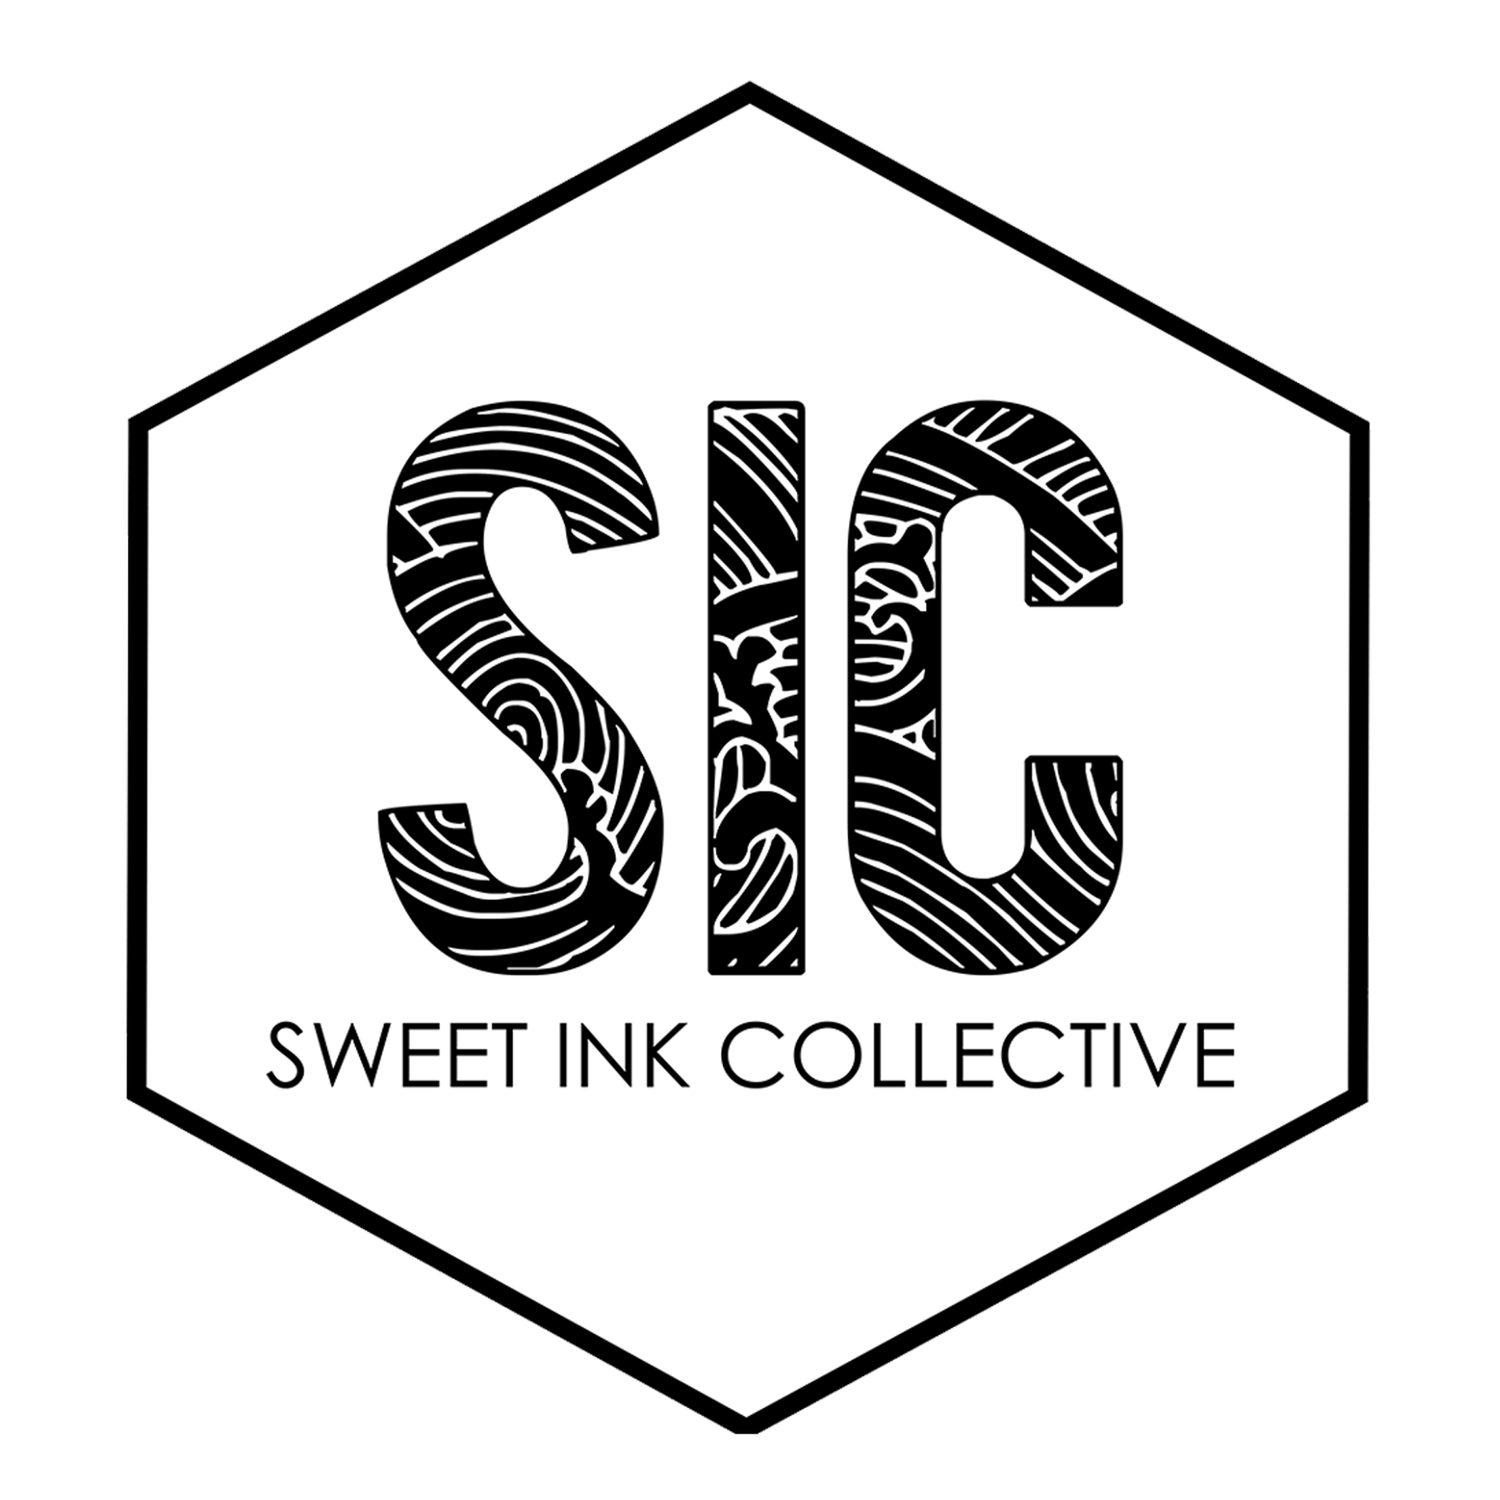 Sweet Ink Collective